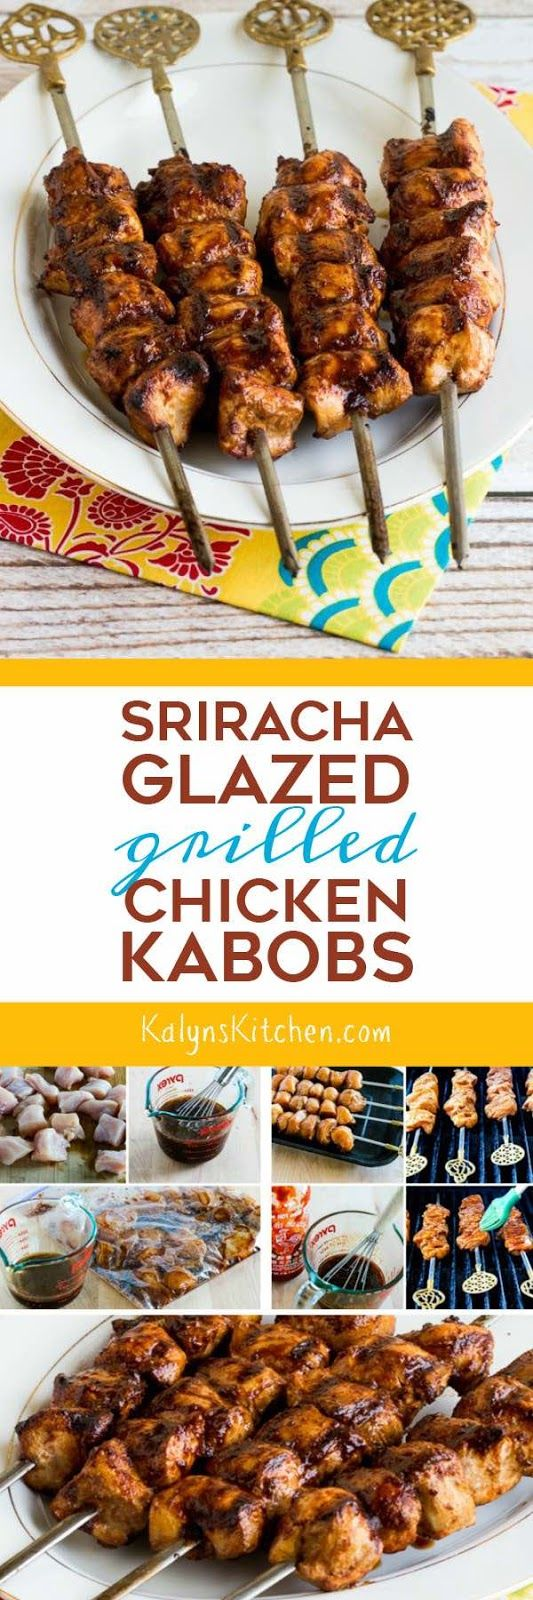 When you want something fun to cook on the grill, these Sriracha-Glazed Grilled Chicken Kabobs are delicious (and kid-friendly if you adjust the amount of Sriracha!) And these tasty kabobs are low-carb, gluten-free, dairy-free, and South Beach Diet Phase One. [found on KalynsKitchen.com]